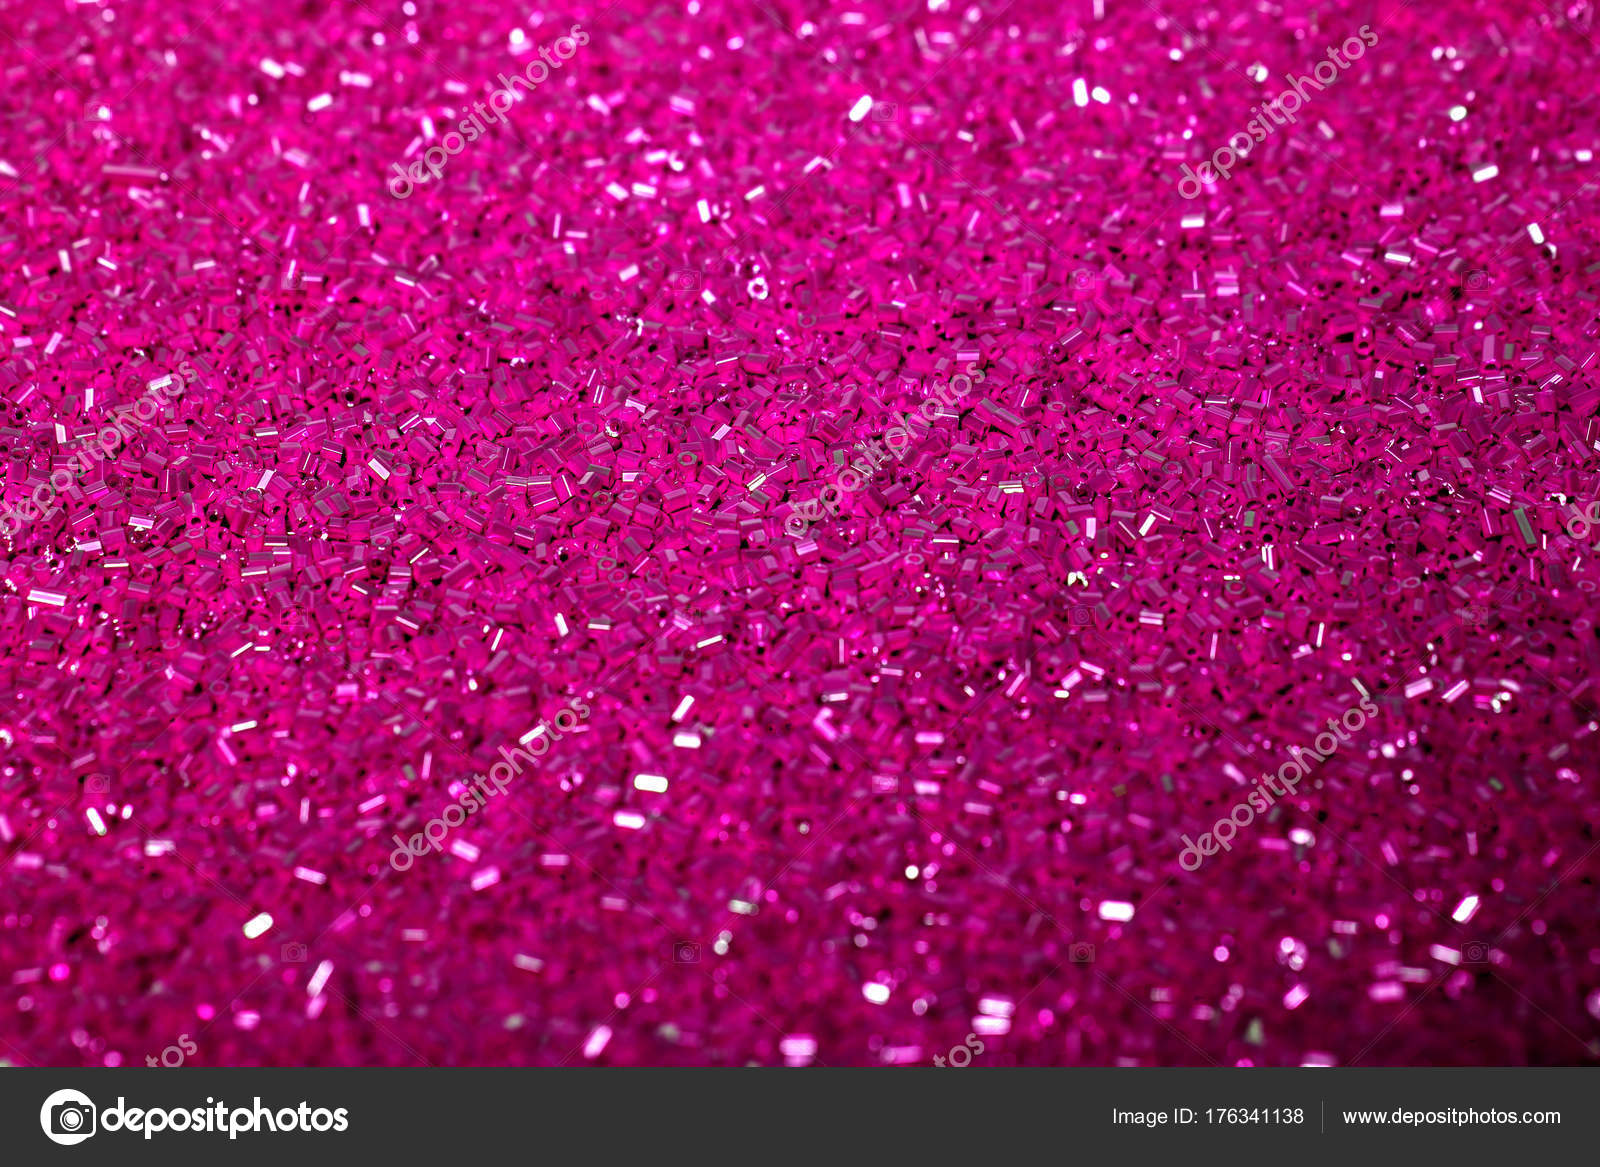 Bright Pink Sequin Background Abstract Glitter Pattern